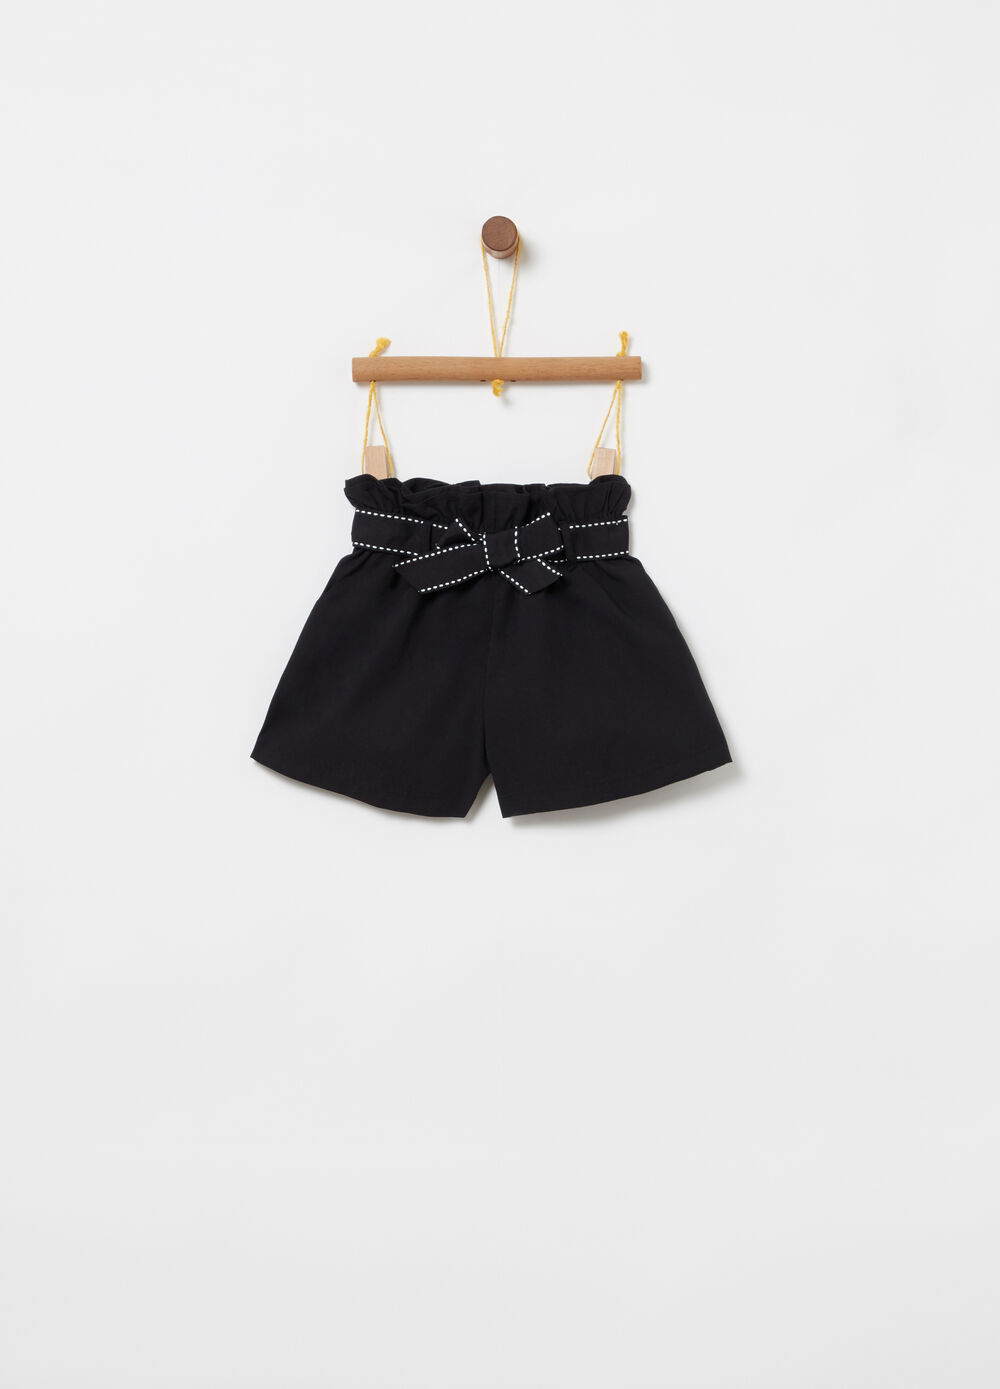 Shorts with elasticated waist, sash and pockets